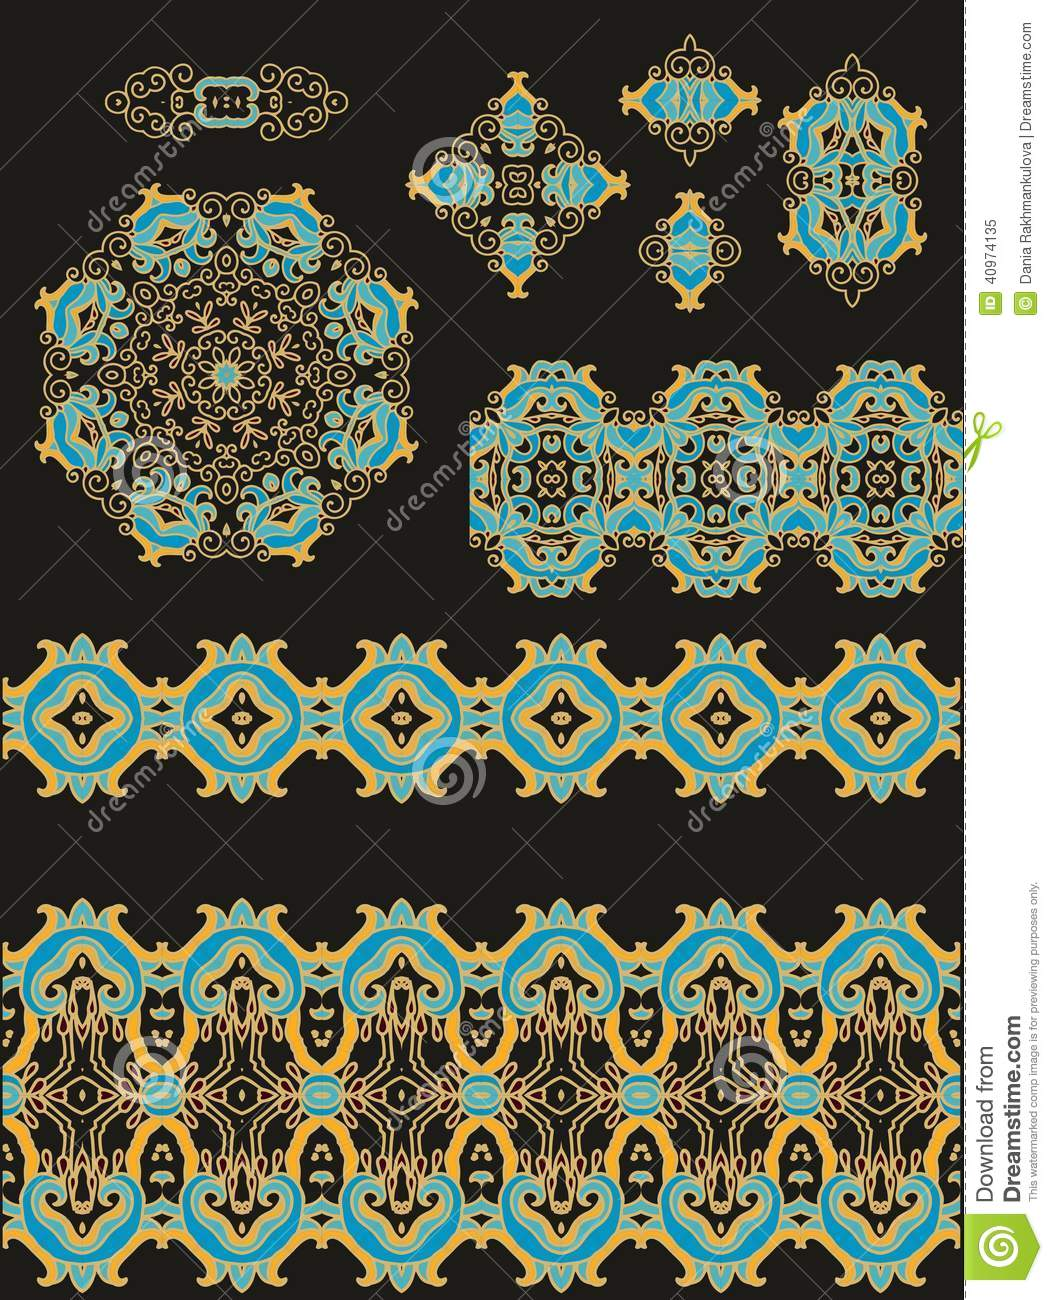 Set of decorative elements in medieval style stock for Gothic design elements